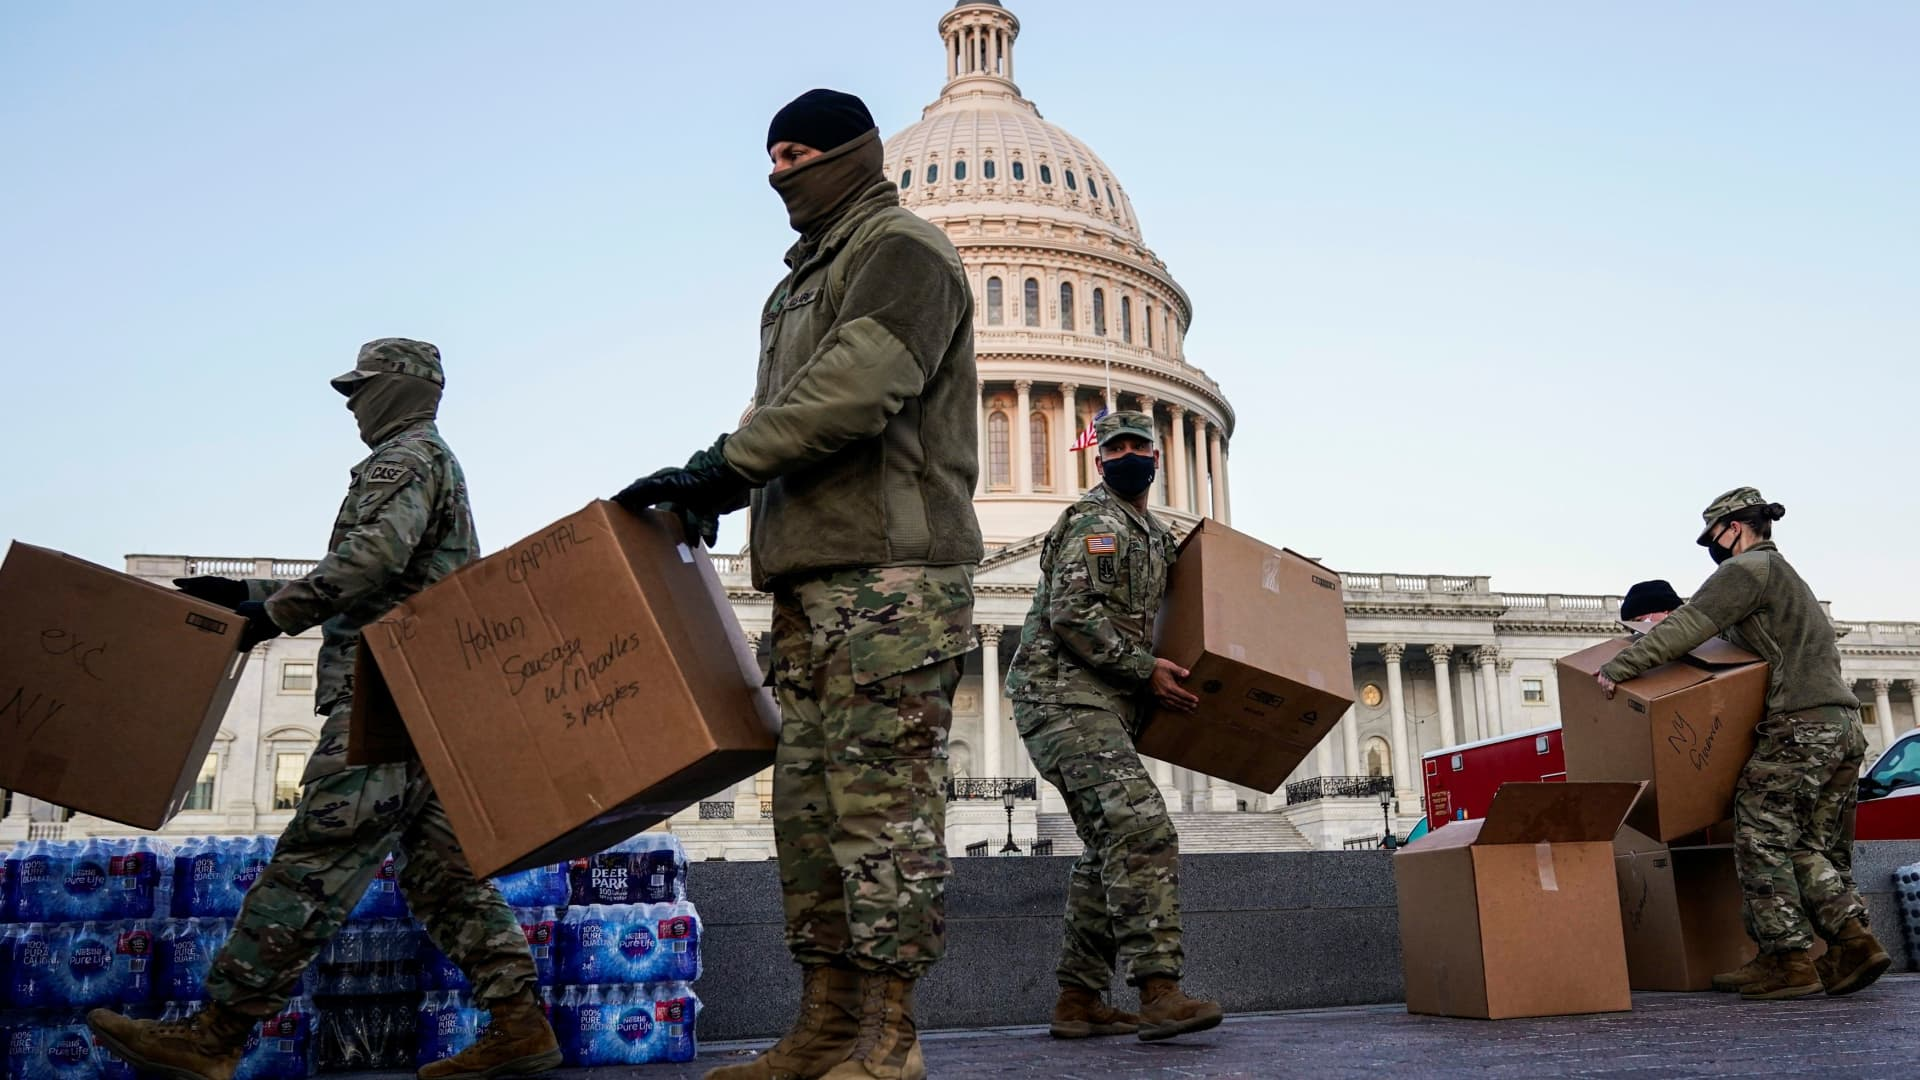 Members of the National Guard move boxes of food at the U.S. Capitol as Democratic members of the House prepare an article of impeachment against U.S. President Donald Trump in Washington, U.S., January 12, 2021.